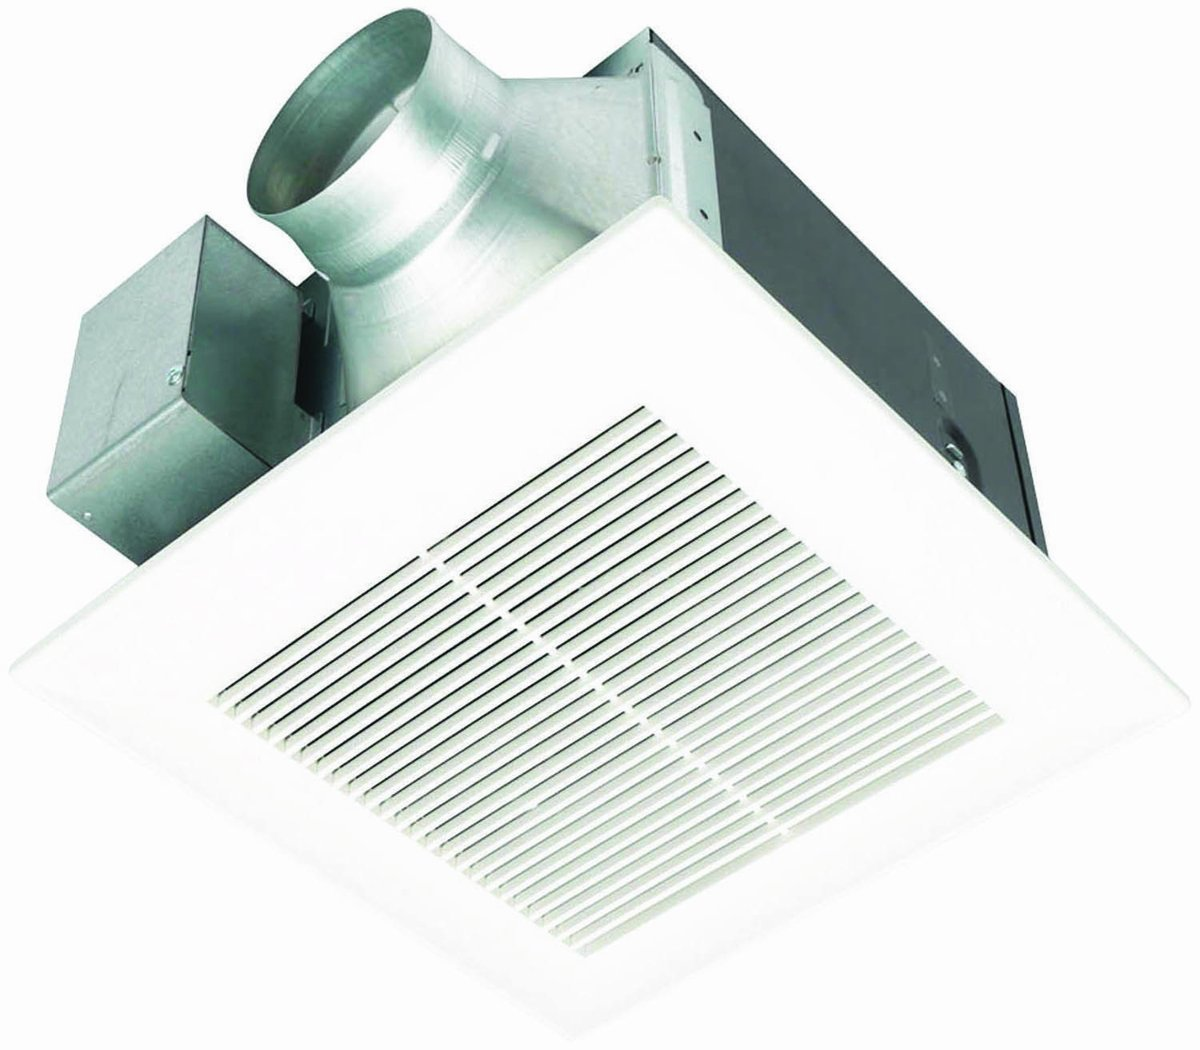 Panasonic FV-11VQ5, Whisper Ceiling 110 CFM Ceiling Mounted Fan